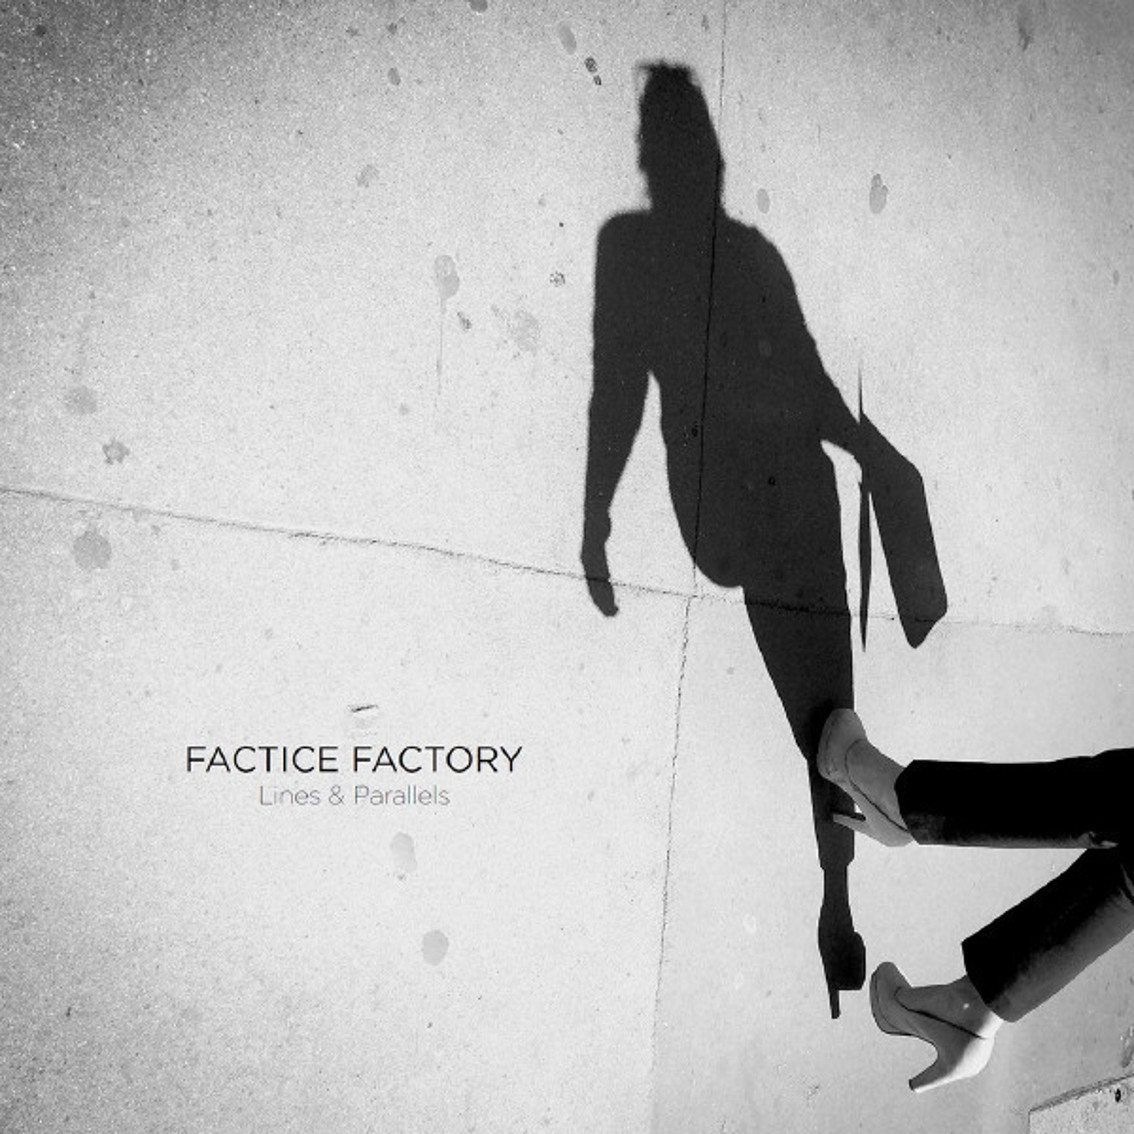 Post-punk act Factice Factory to launch their 3rd album in January - only 250 copies available